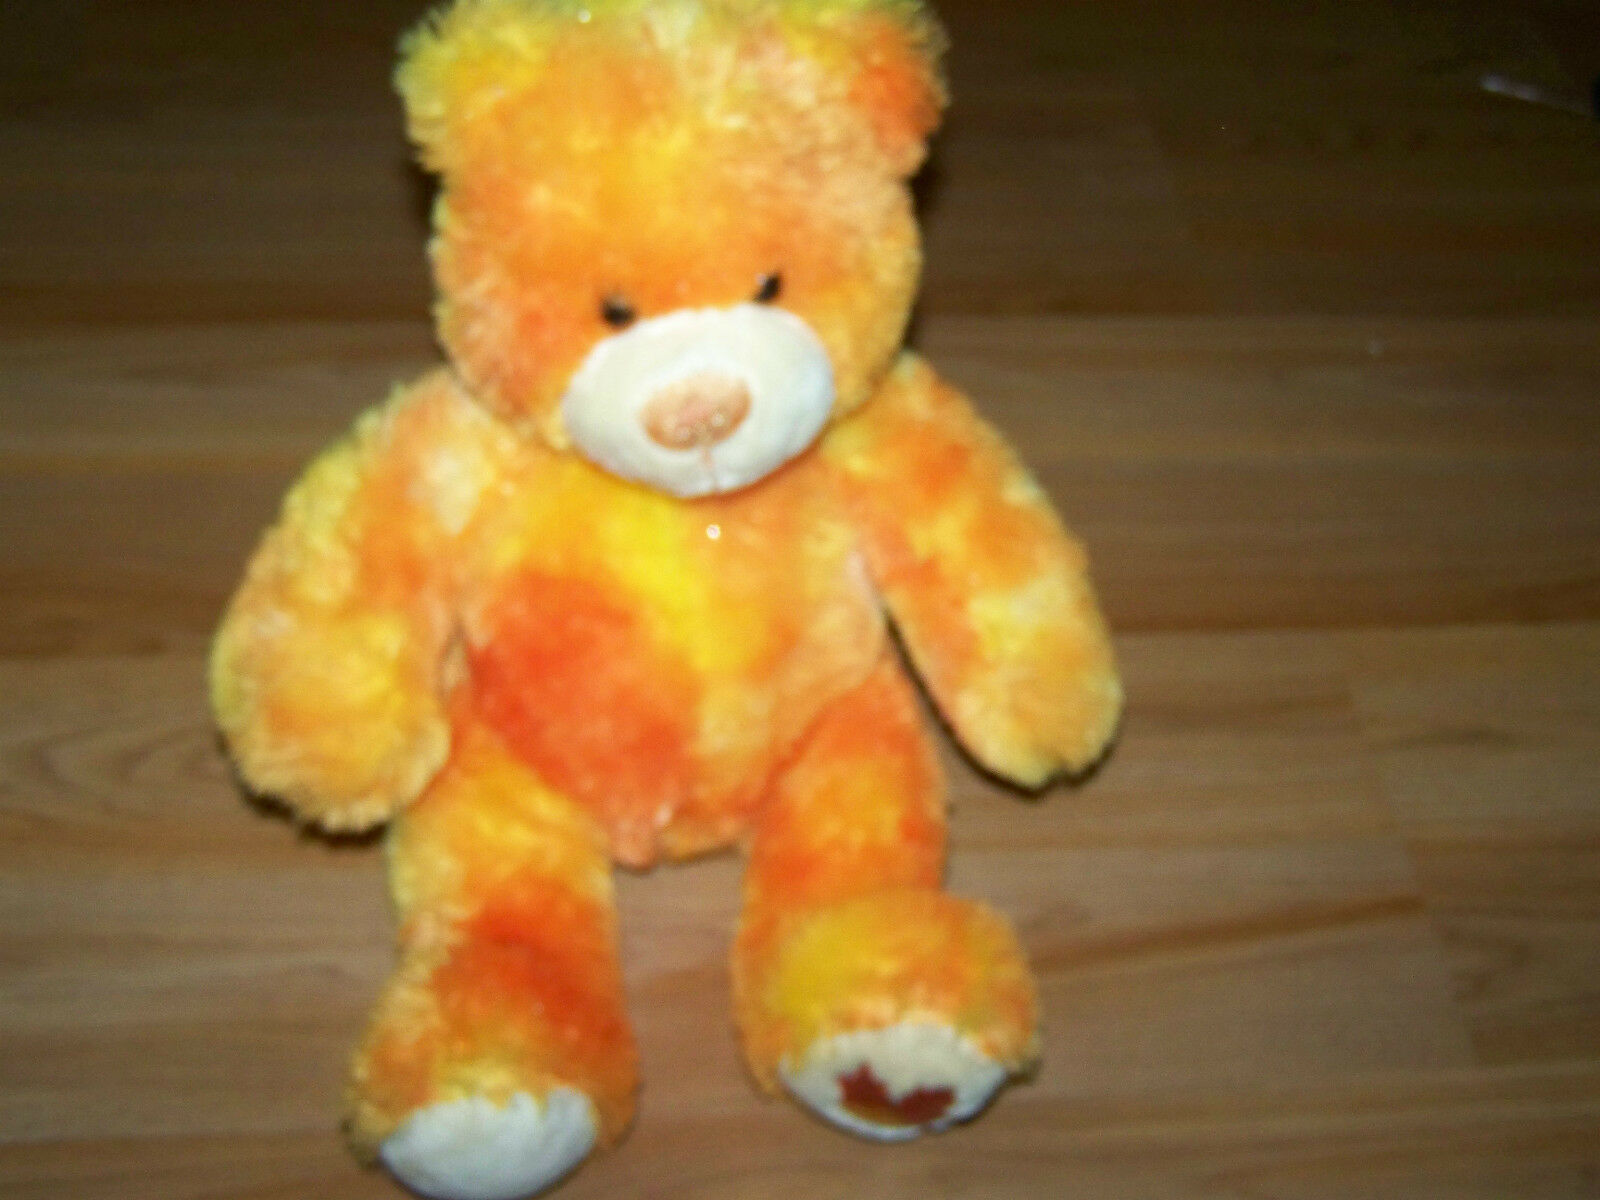 Primary image for Fall Autumn Leaf Orange Sparkle Build A Bear Workshop BAB Plush Teddy Toy EUC